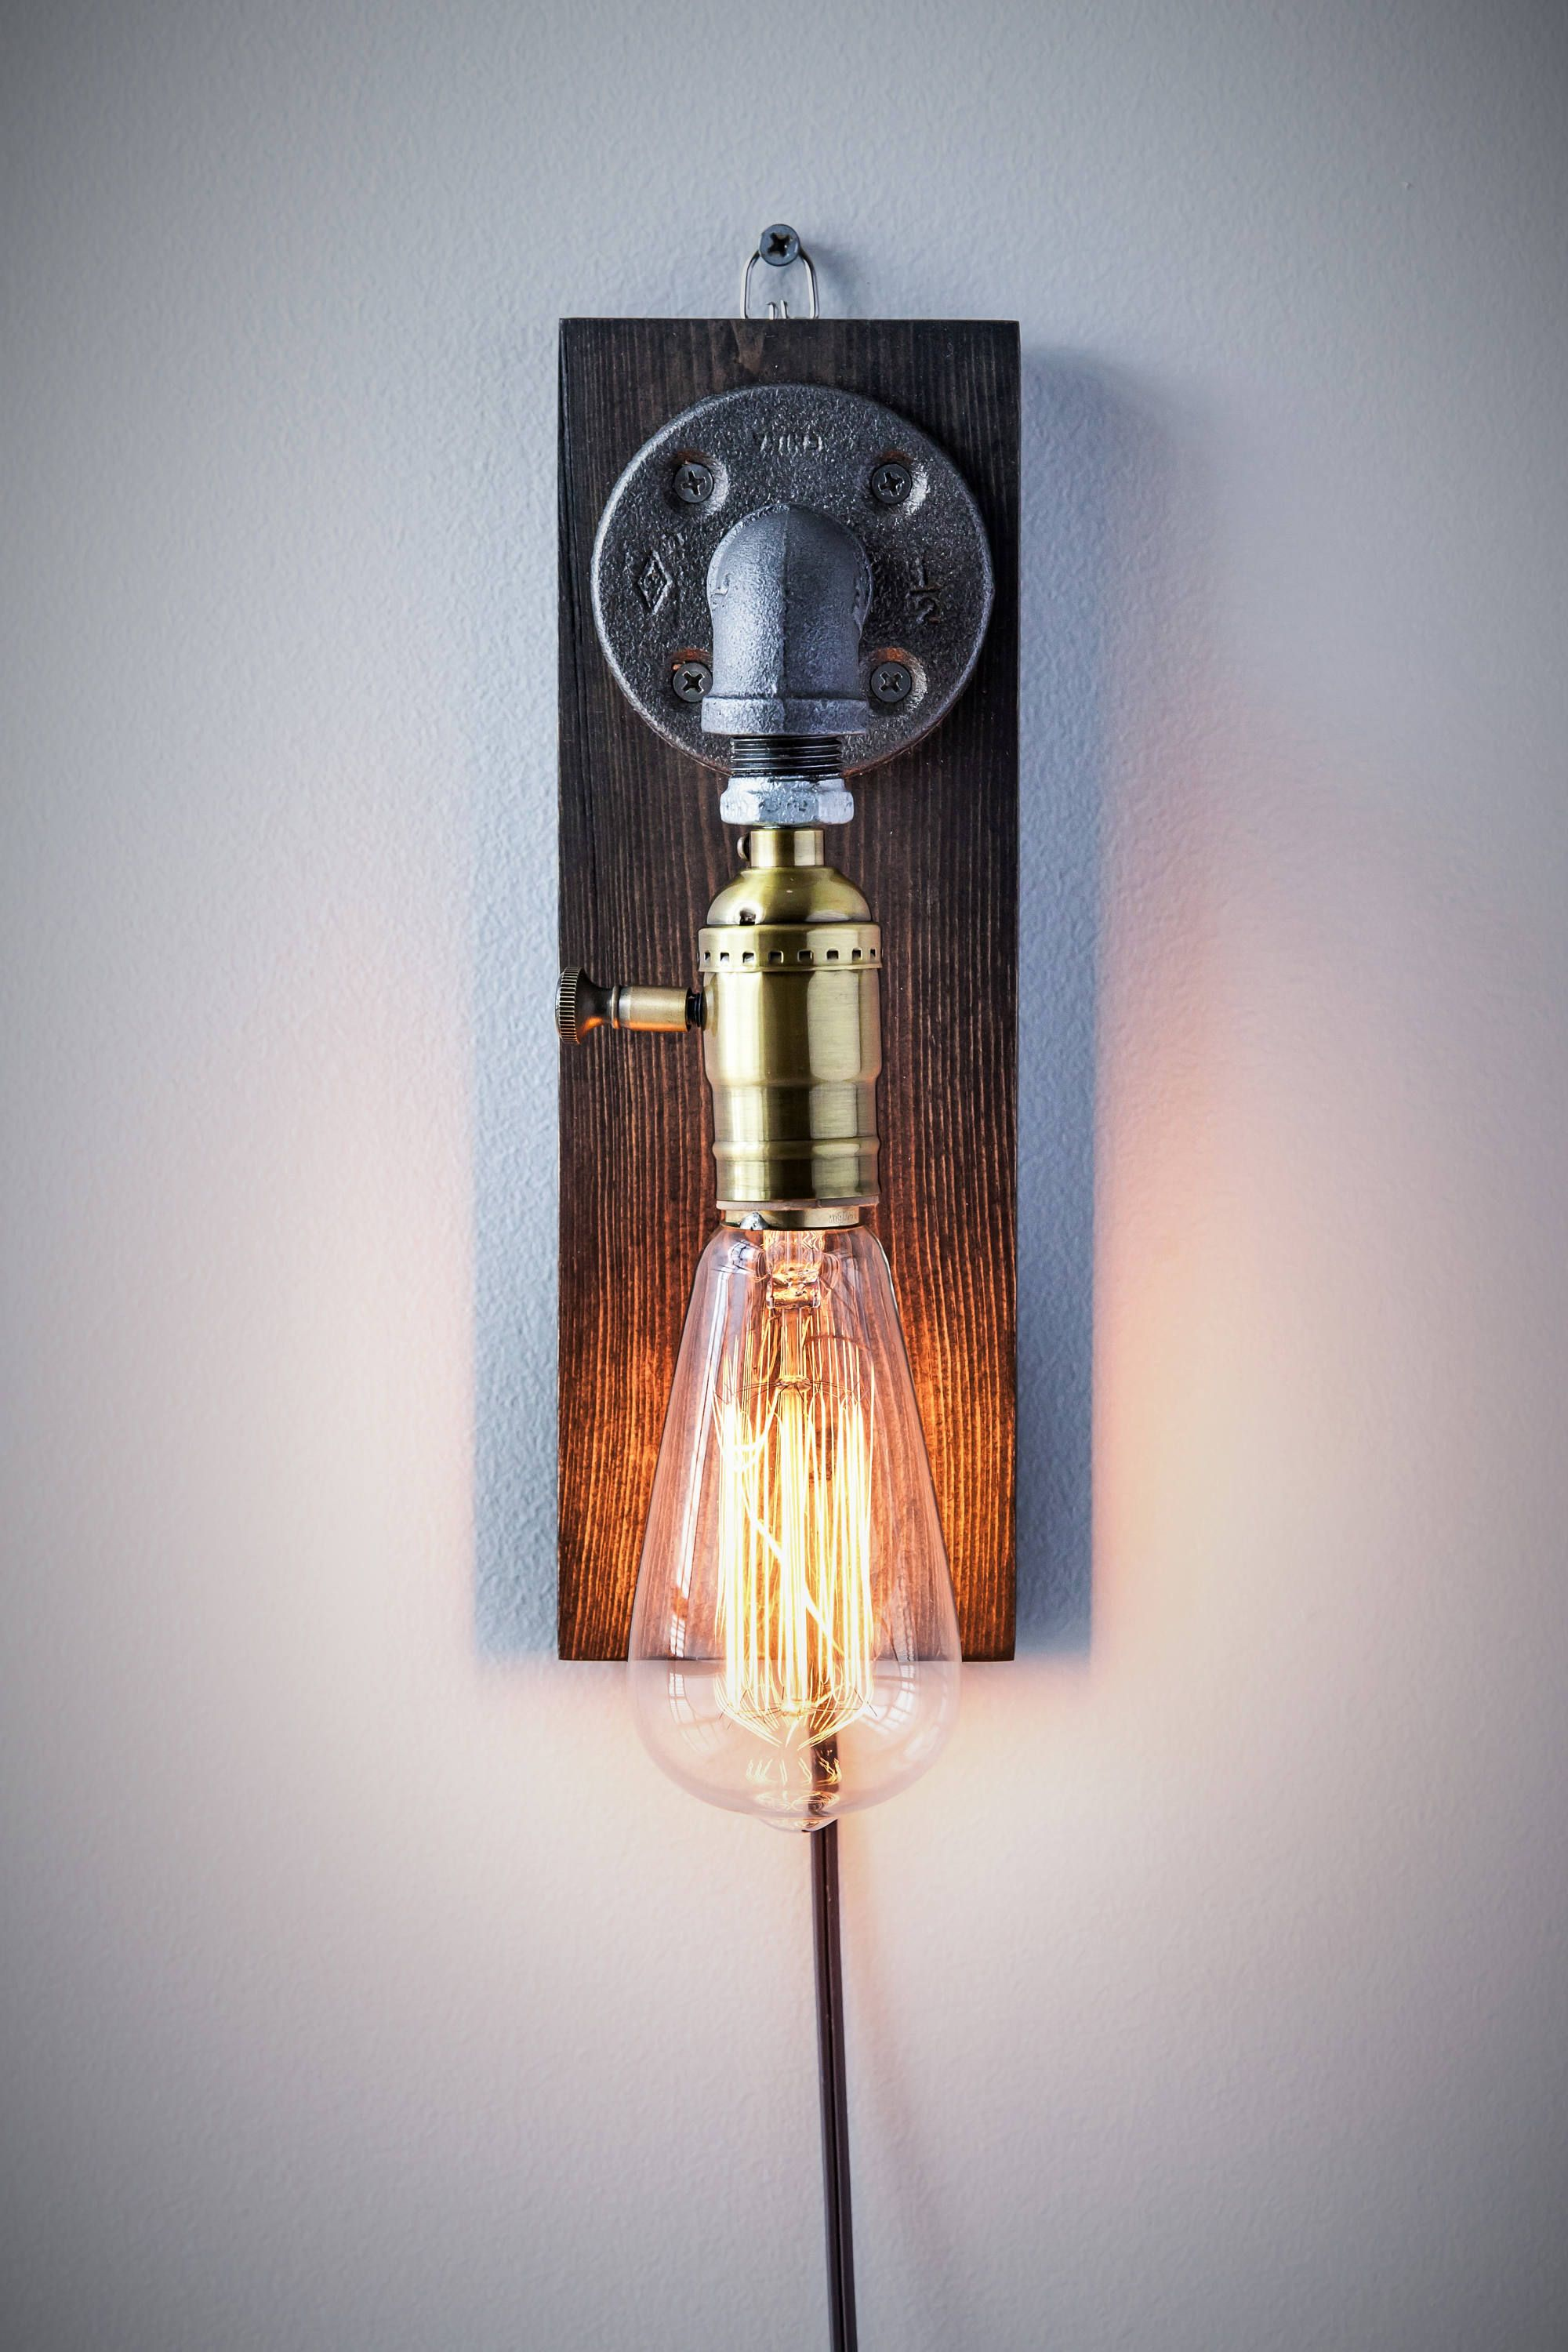 Plug In Sconce Tisch Lampe Wand Wand Steampunk Lampe Rustic Etsy Plug In Wall Sconce Rustic Lamps Sconce Lamp